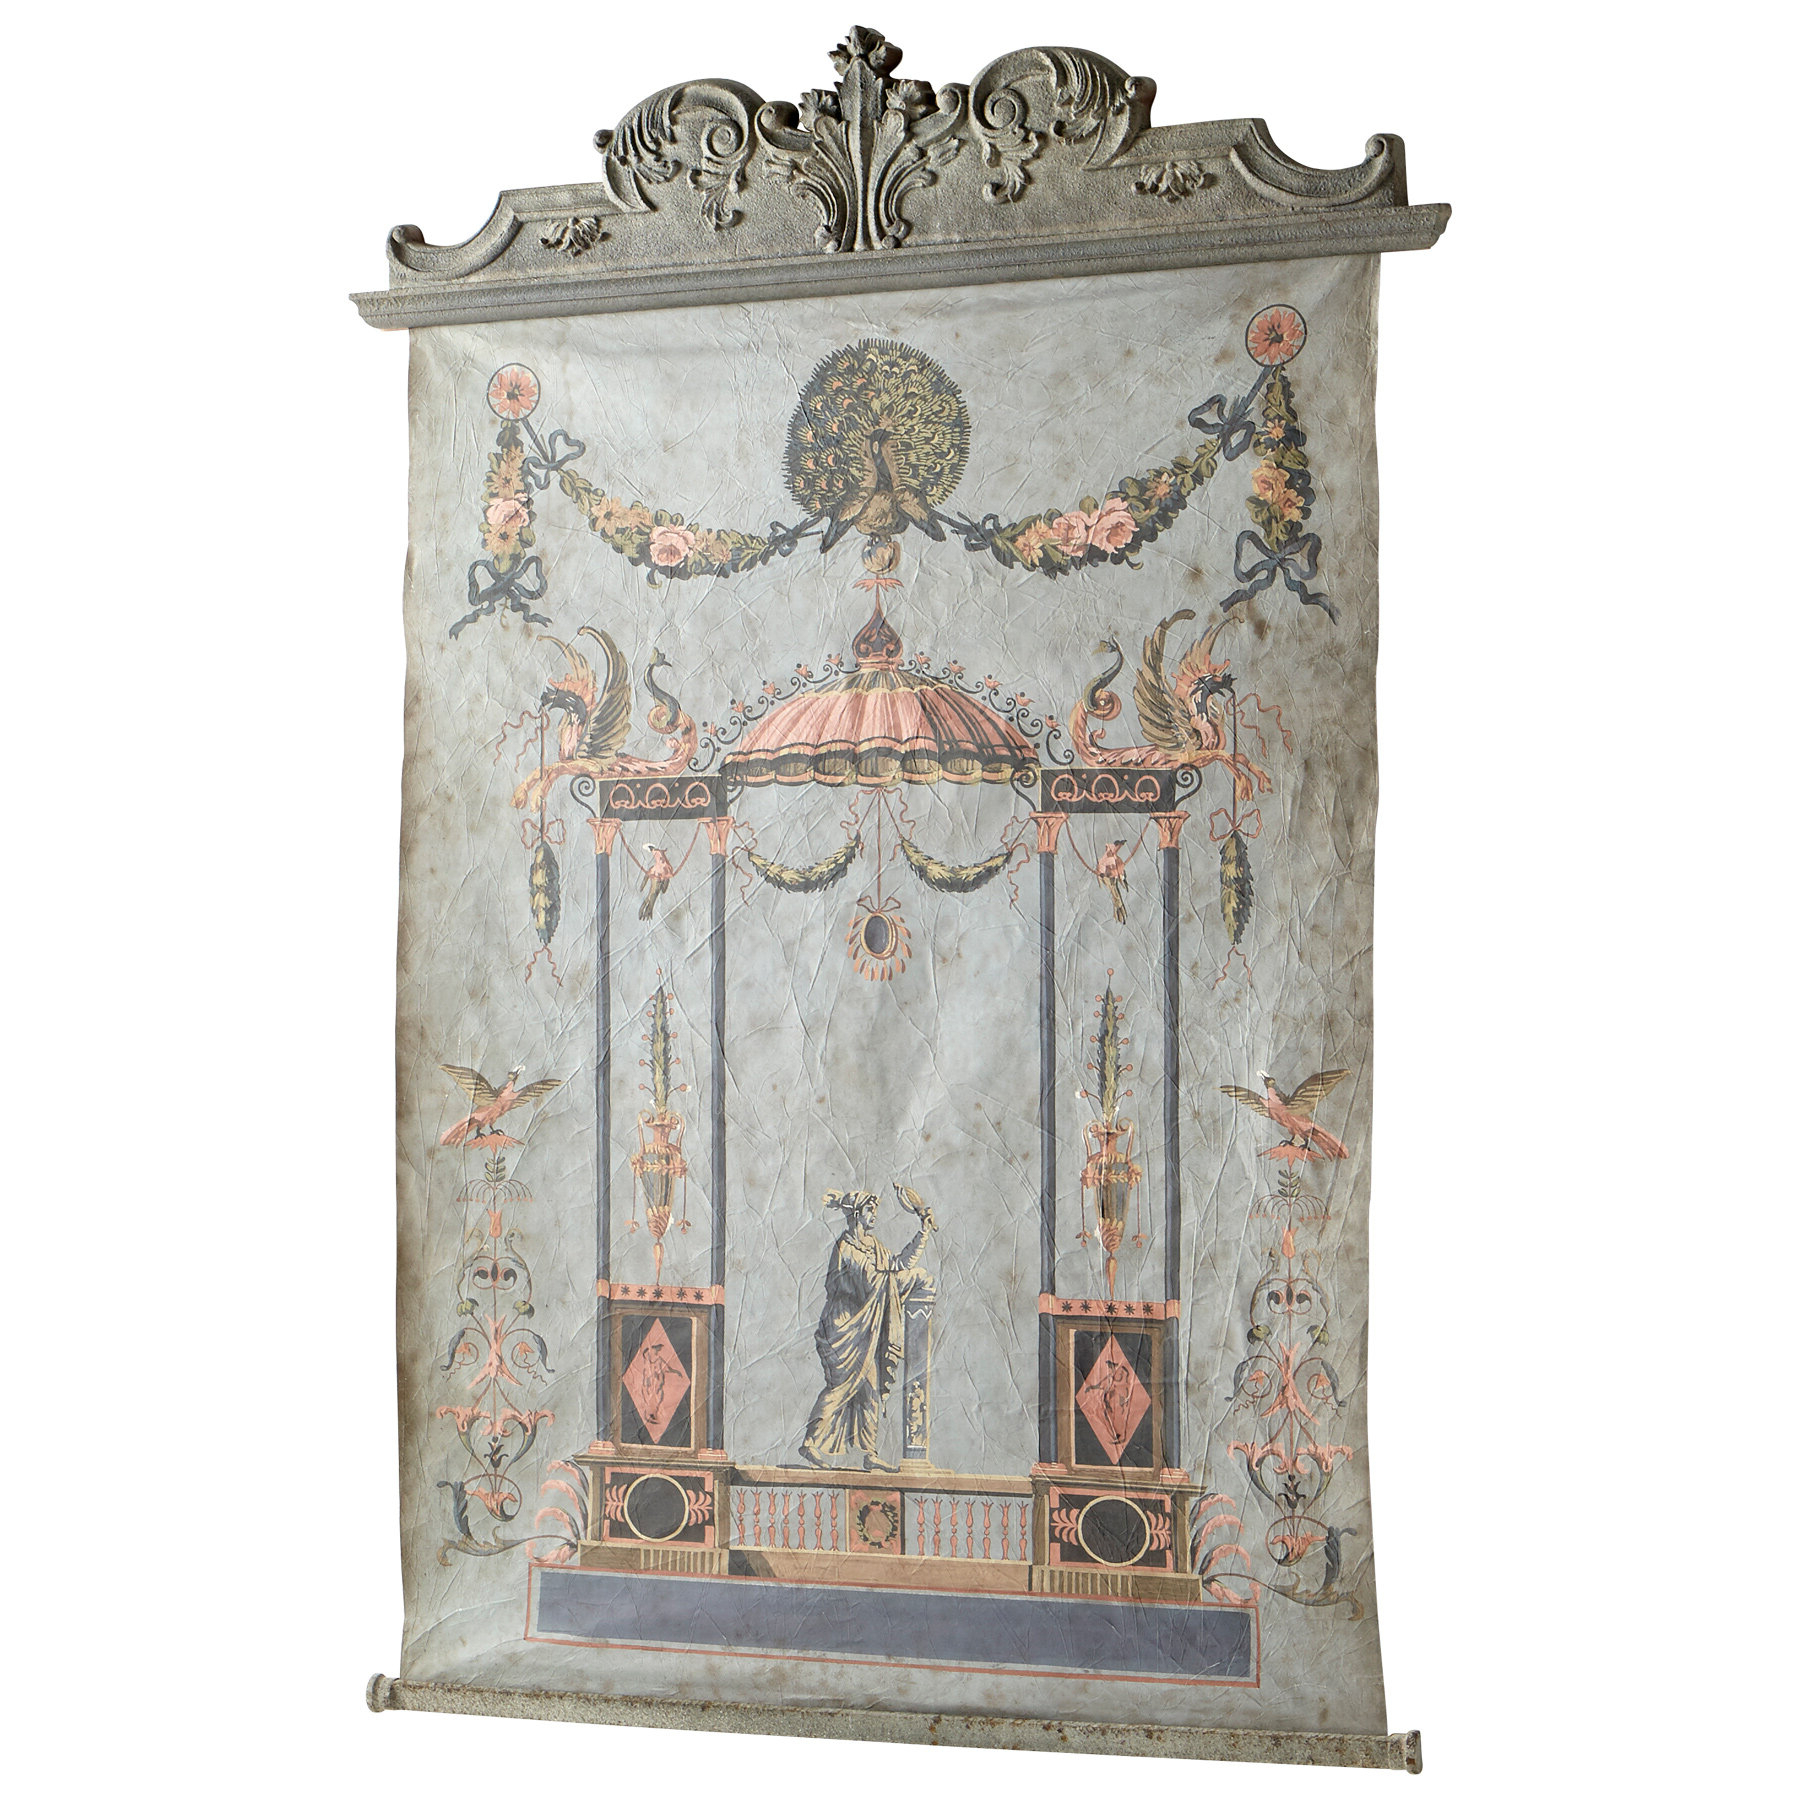 Blended Fabric Ethereal Days Chinoiserie Wall Hanging With Rod Inside Most Up To Date Blended Fabric Hidden Garden Chinoiserie Wall Hangings With Rod (View 2 of 20)